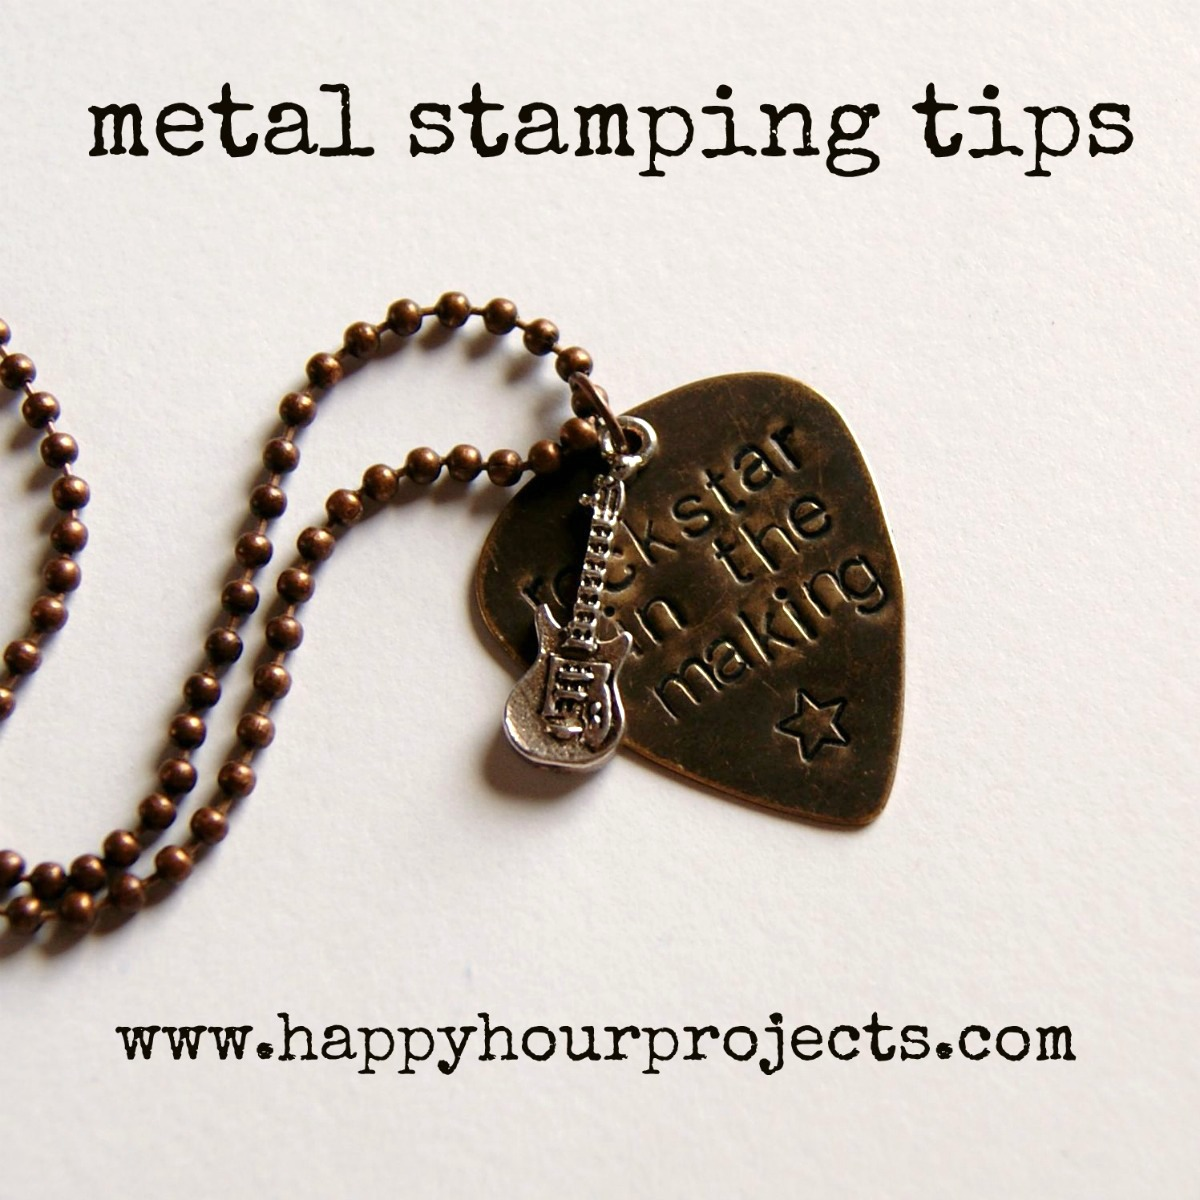 Jewelry stamping happy hour projects for How do you make hand stamped jewelry